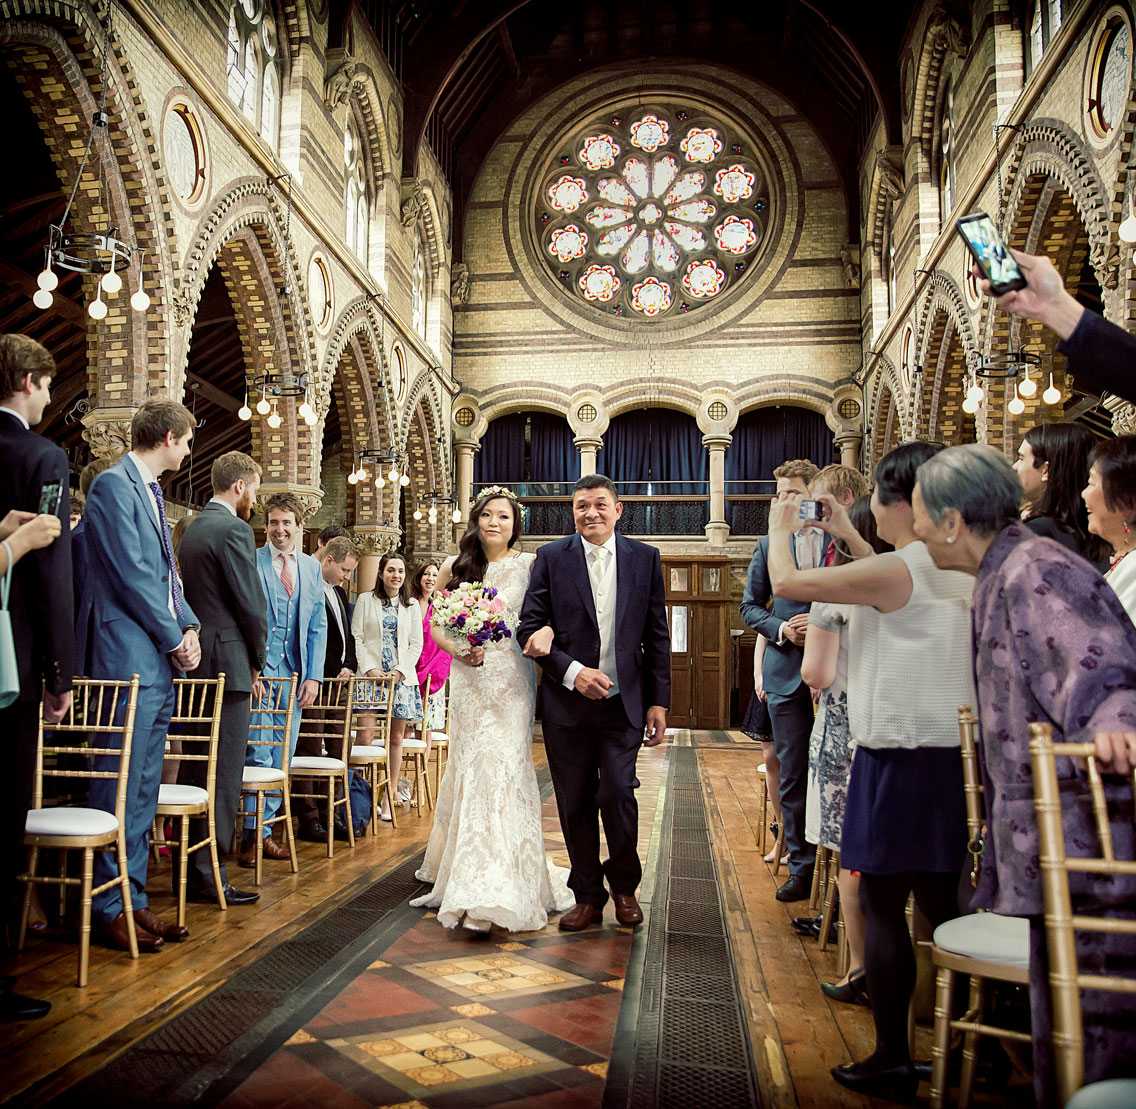 London Church Weddings, to home counties and beyond! London Wedding Photographers